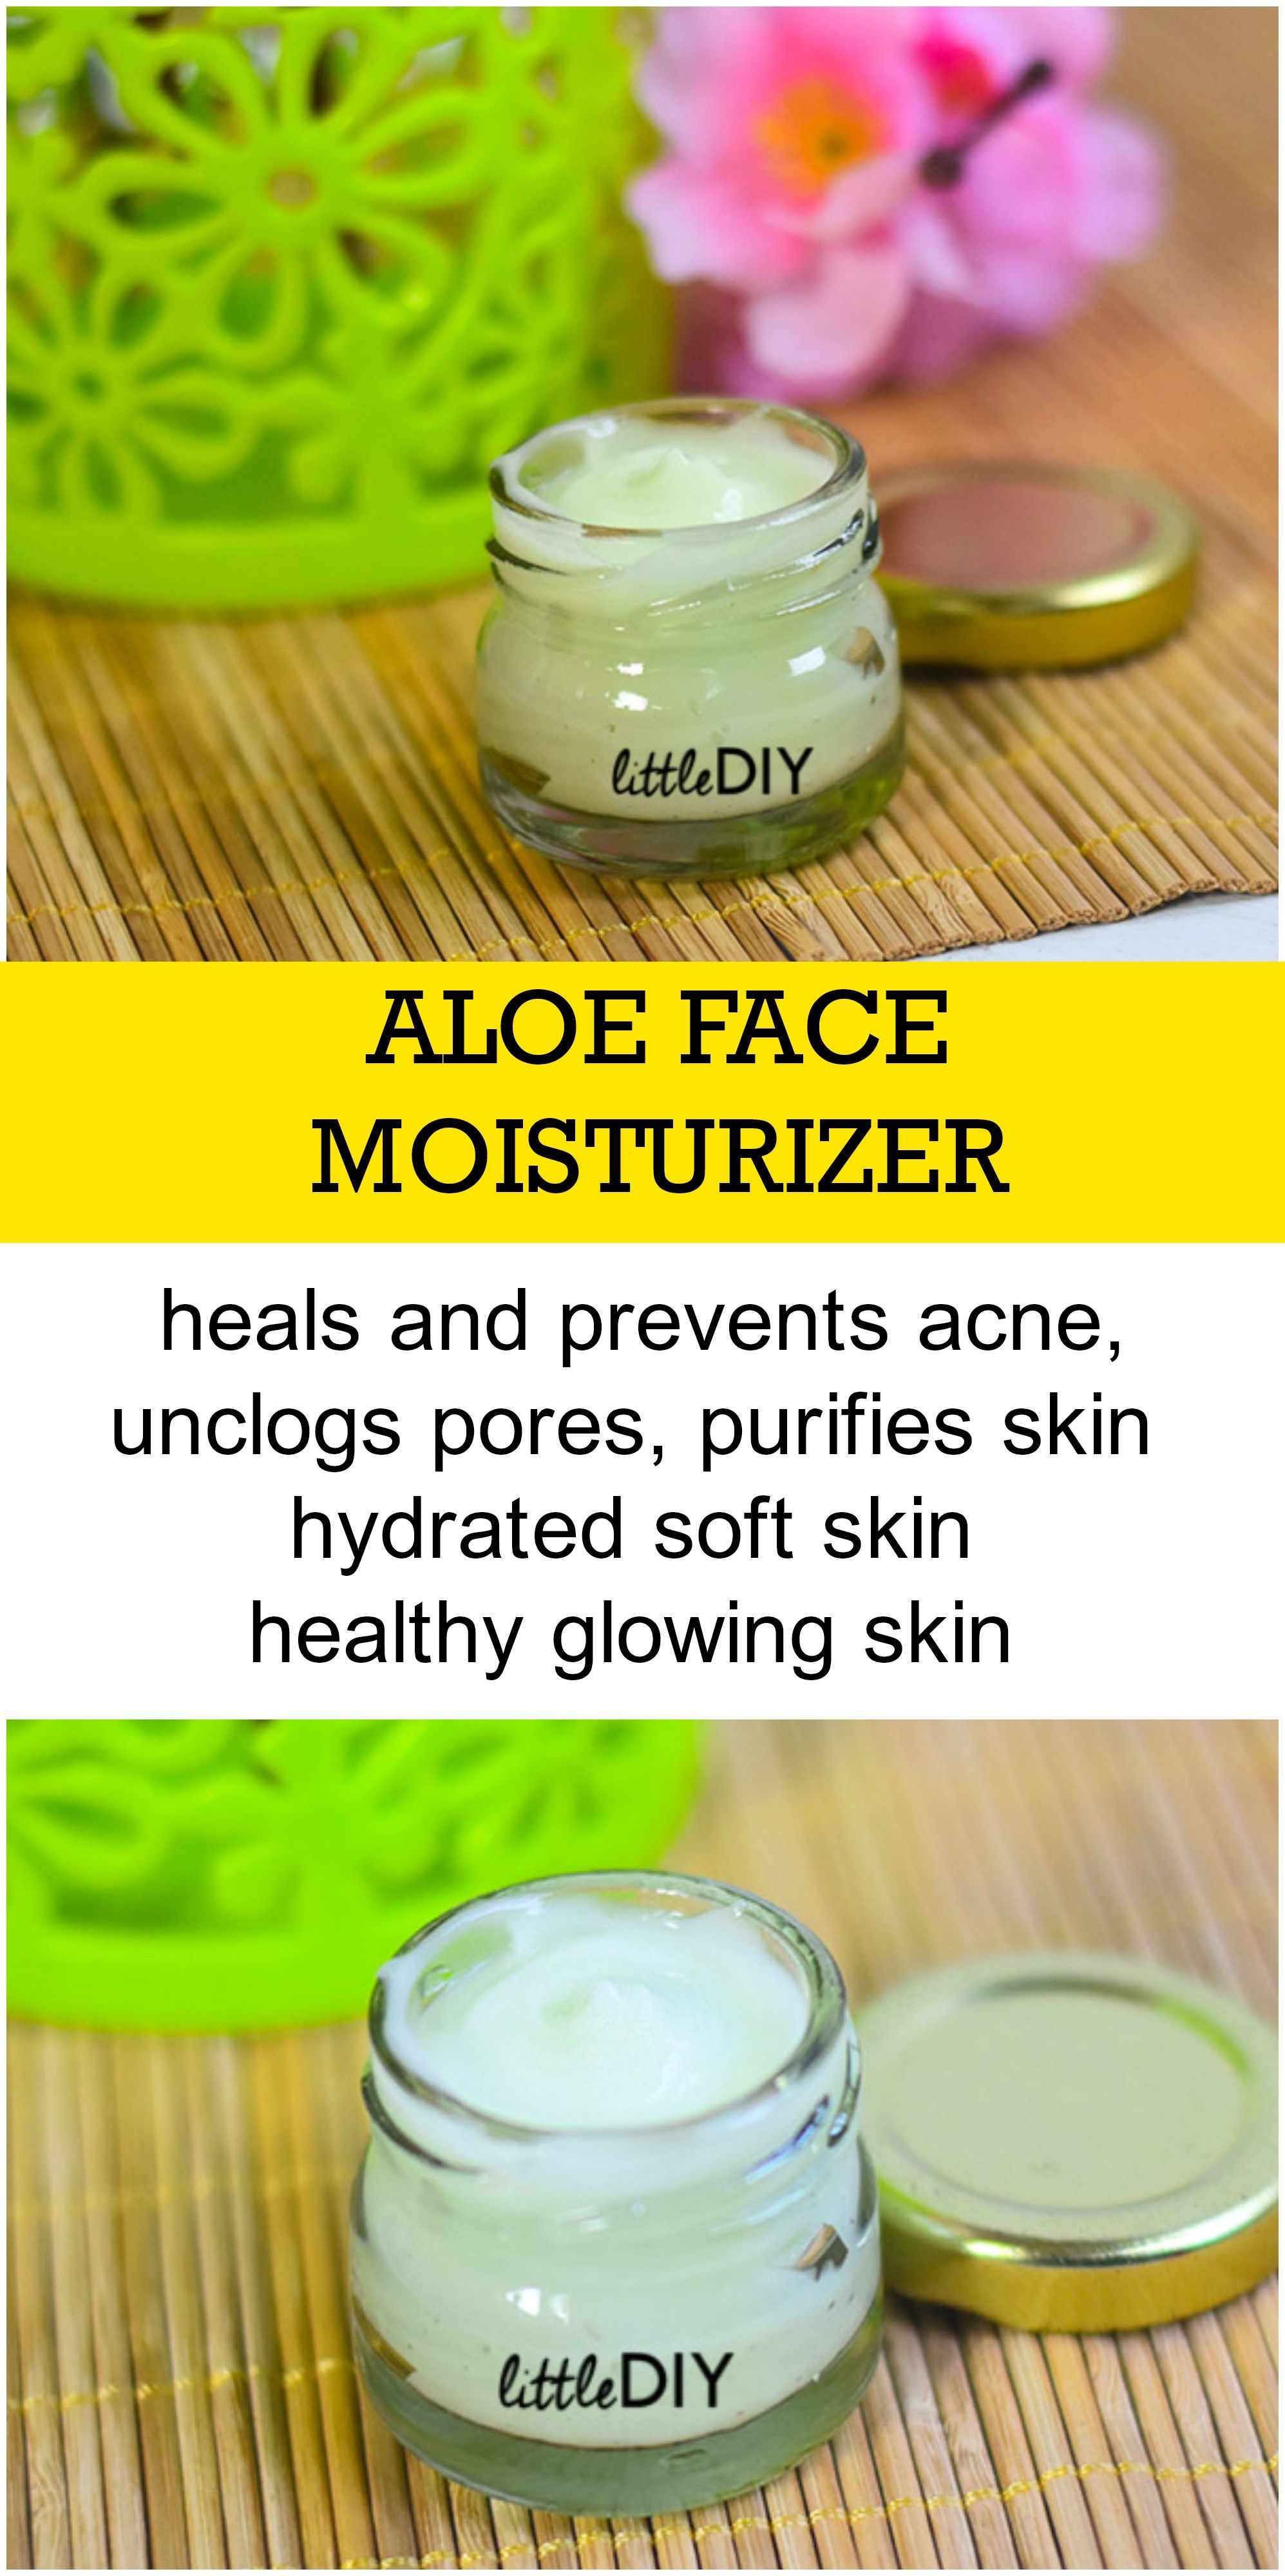 Diy Aloe Face Moisturizer Aloe On Face Homemade Skin Care Diy Moisturizer